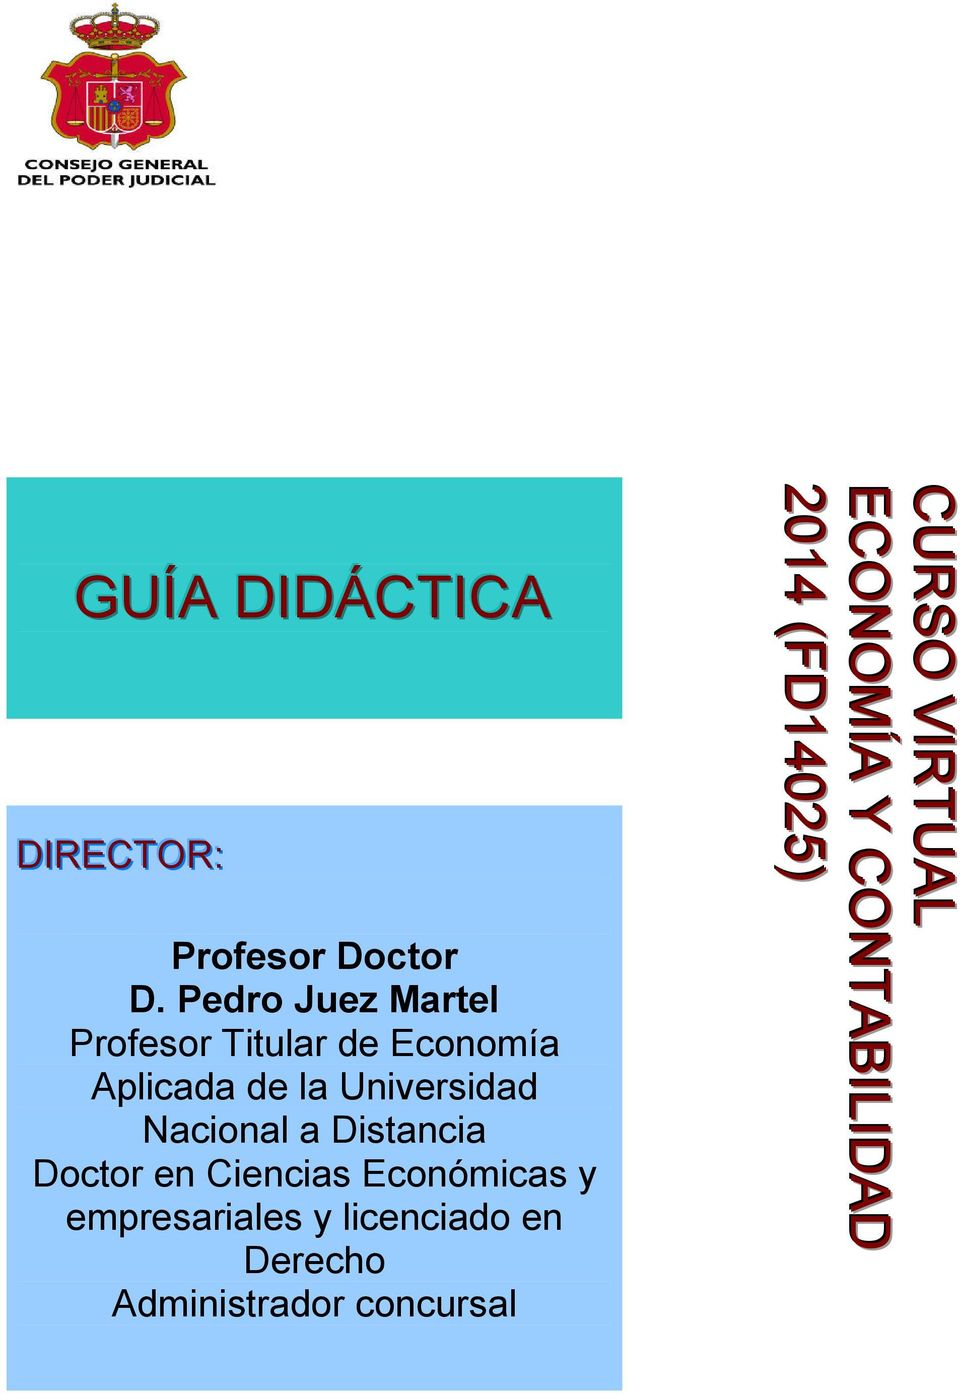 Universidad Nacional a Distancia Doctor en Ciencias Económicas y